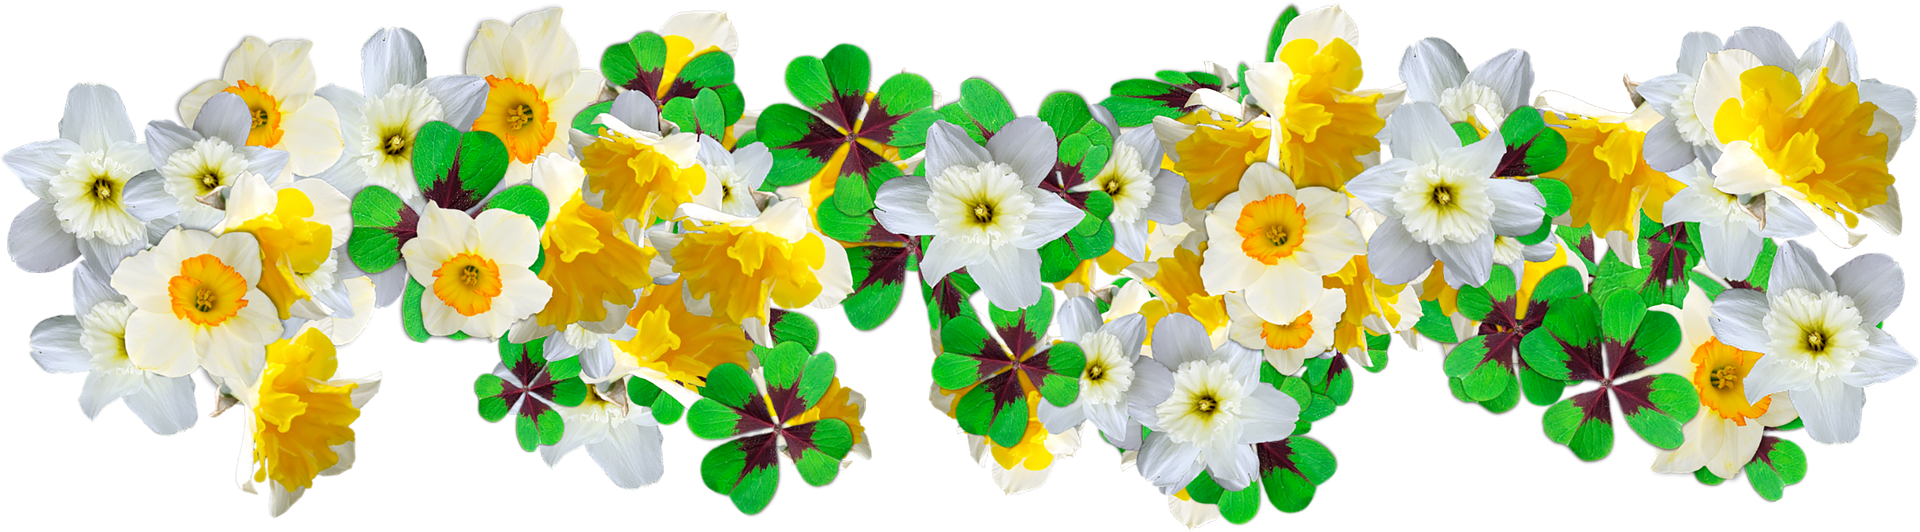 Daffodils and clover by MLARANDA from Pixabay